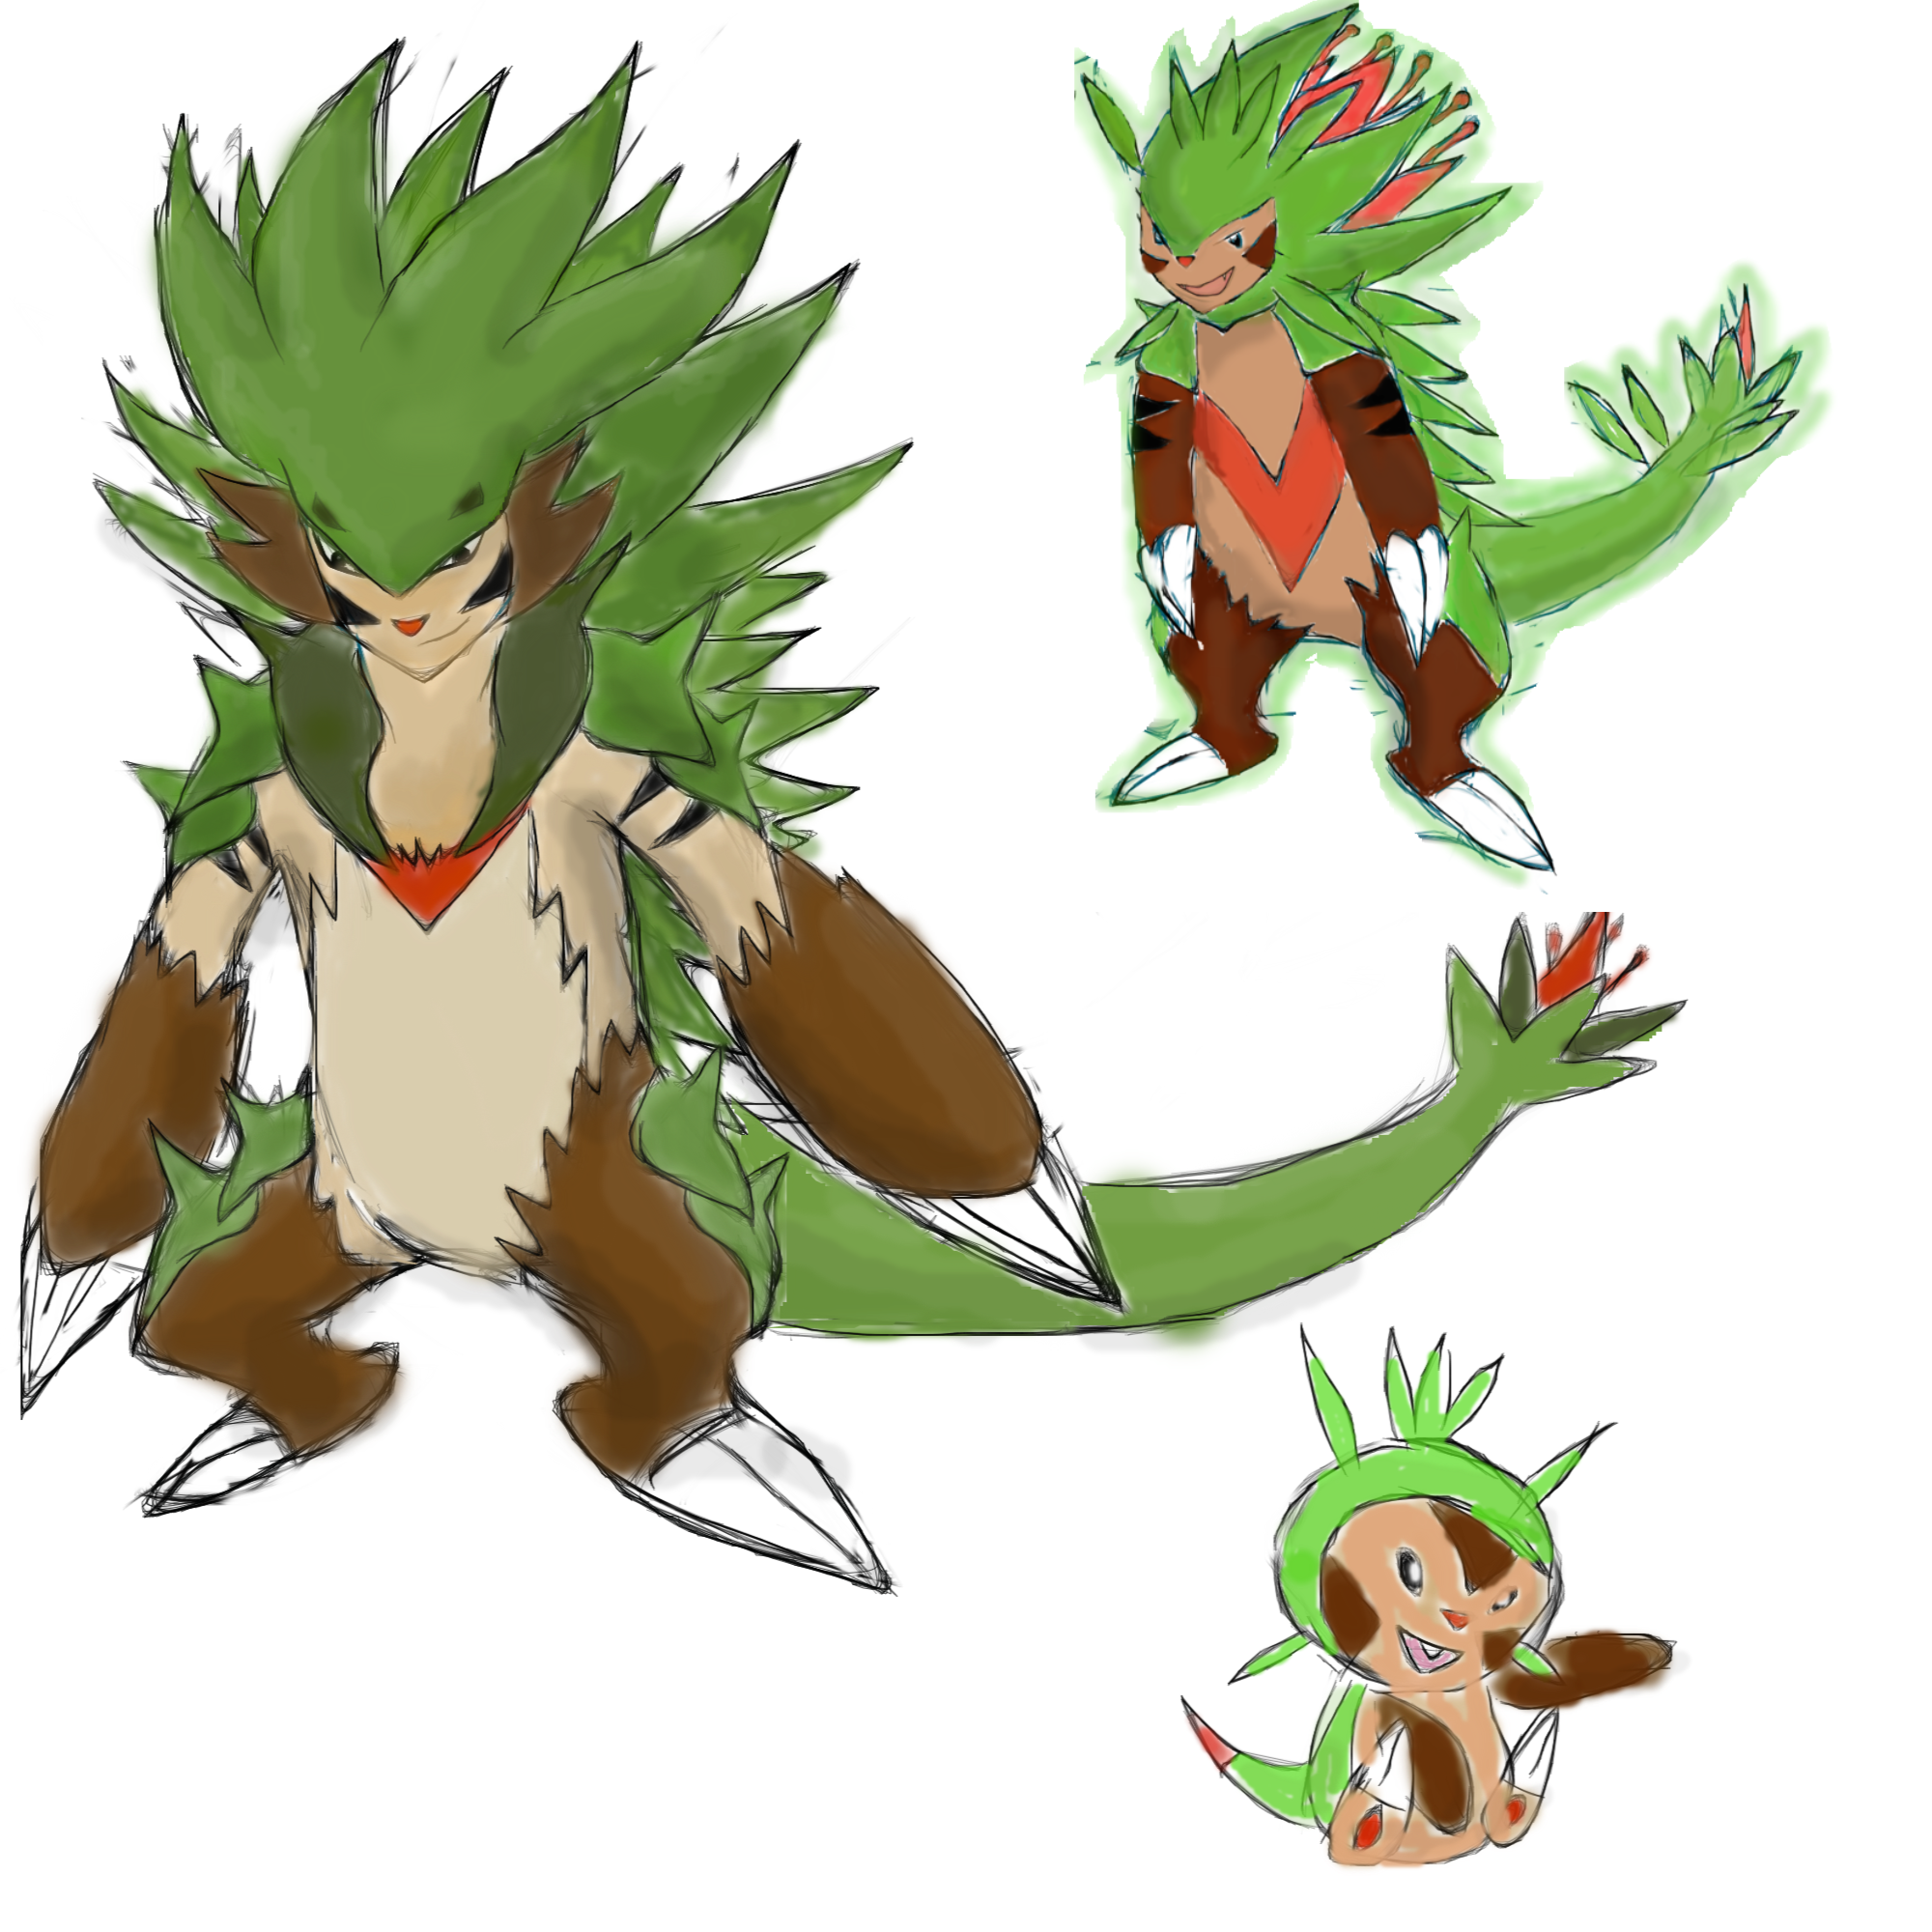 chespin evolution line by roblee96 on DeviantArt